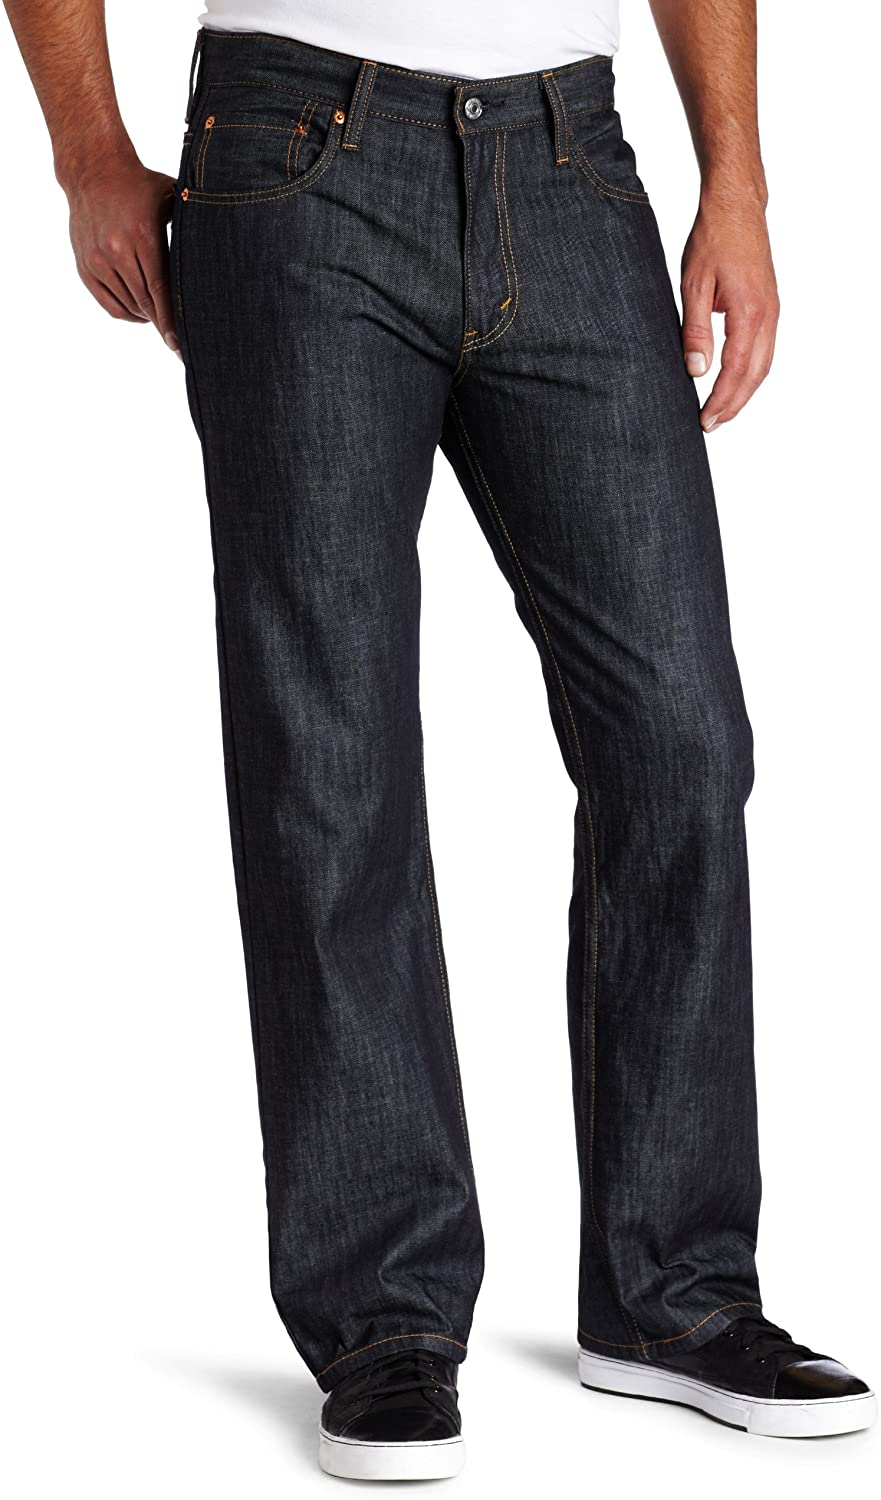 Levi's Men's 569 Tulsa Manufacturer regenerated product Mall Loose Fit Straight Jean